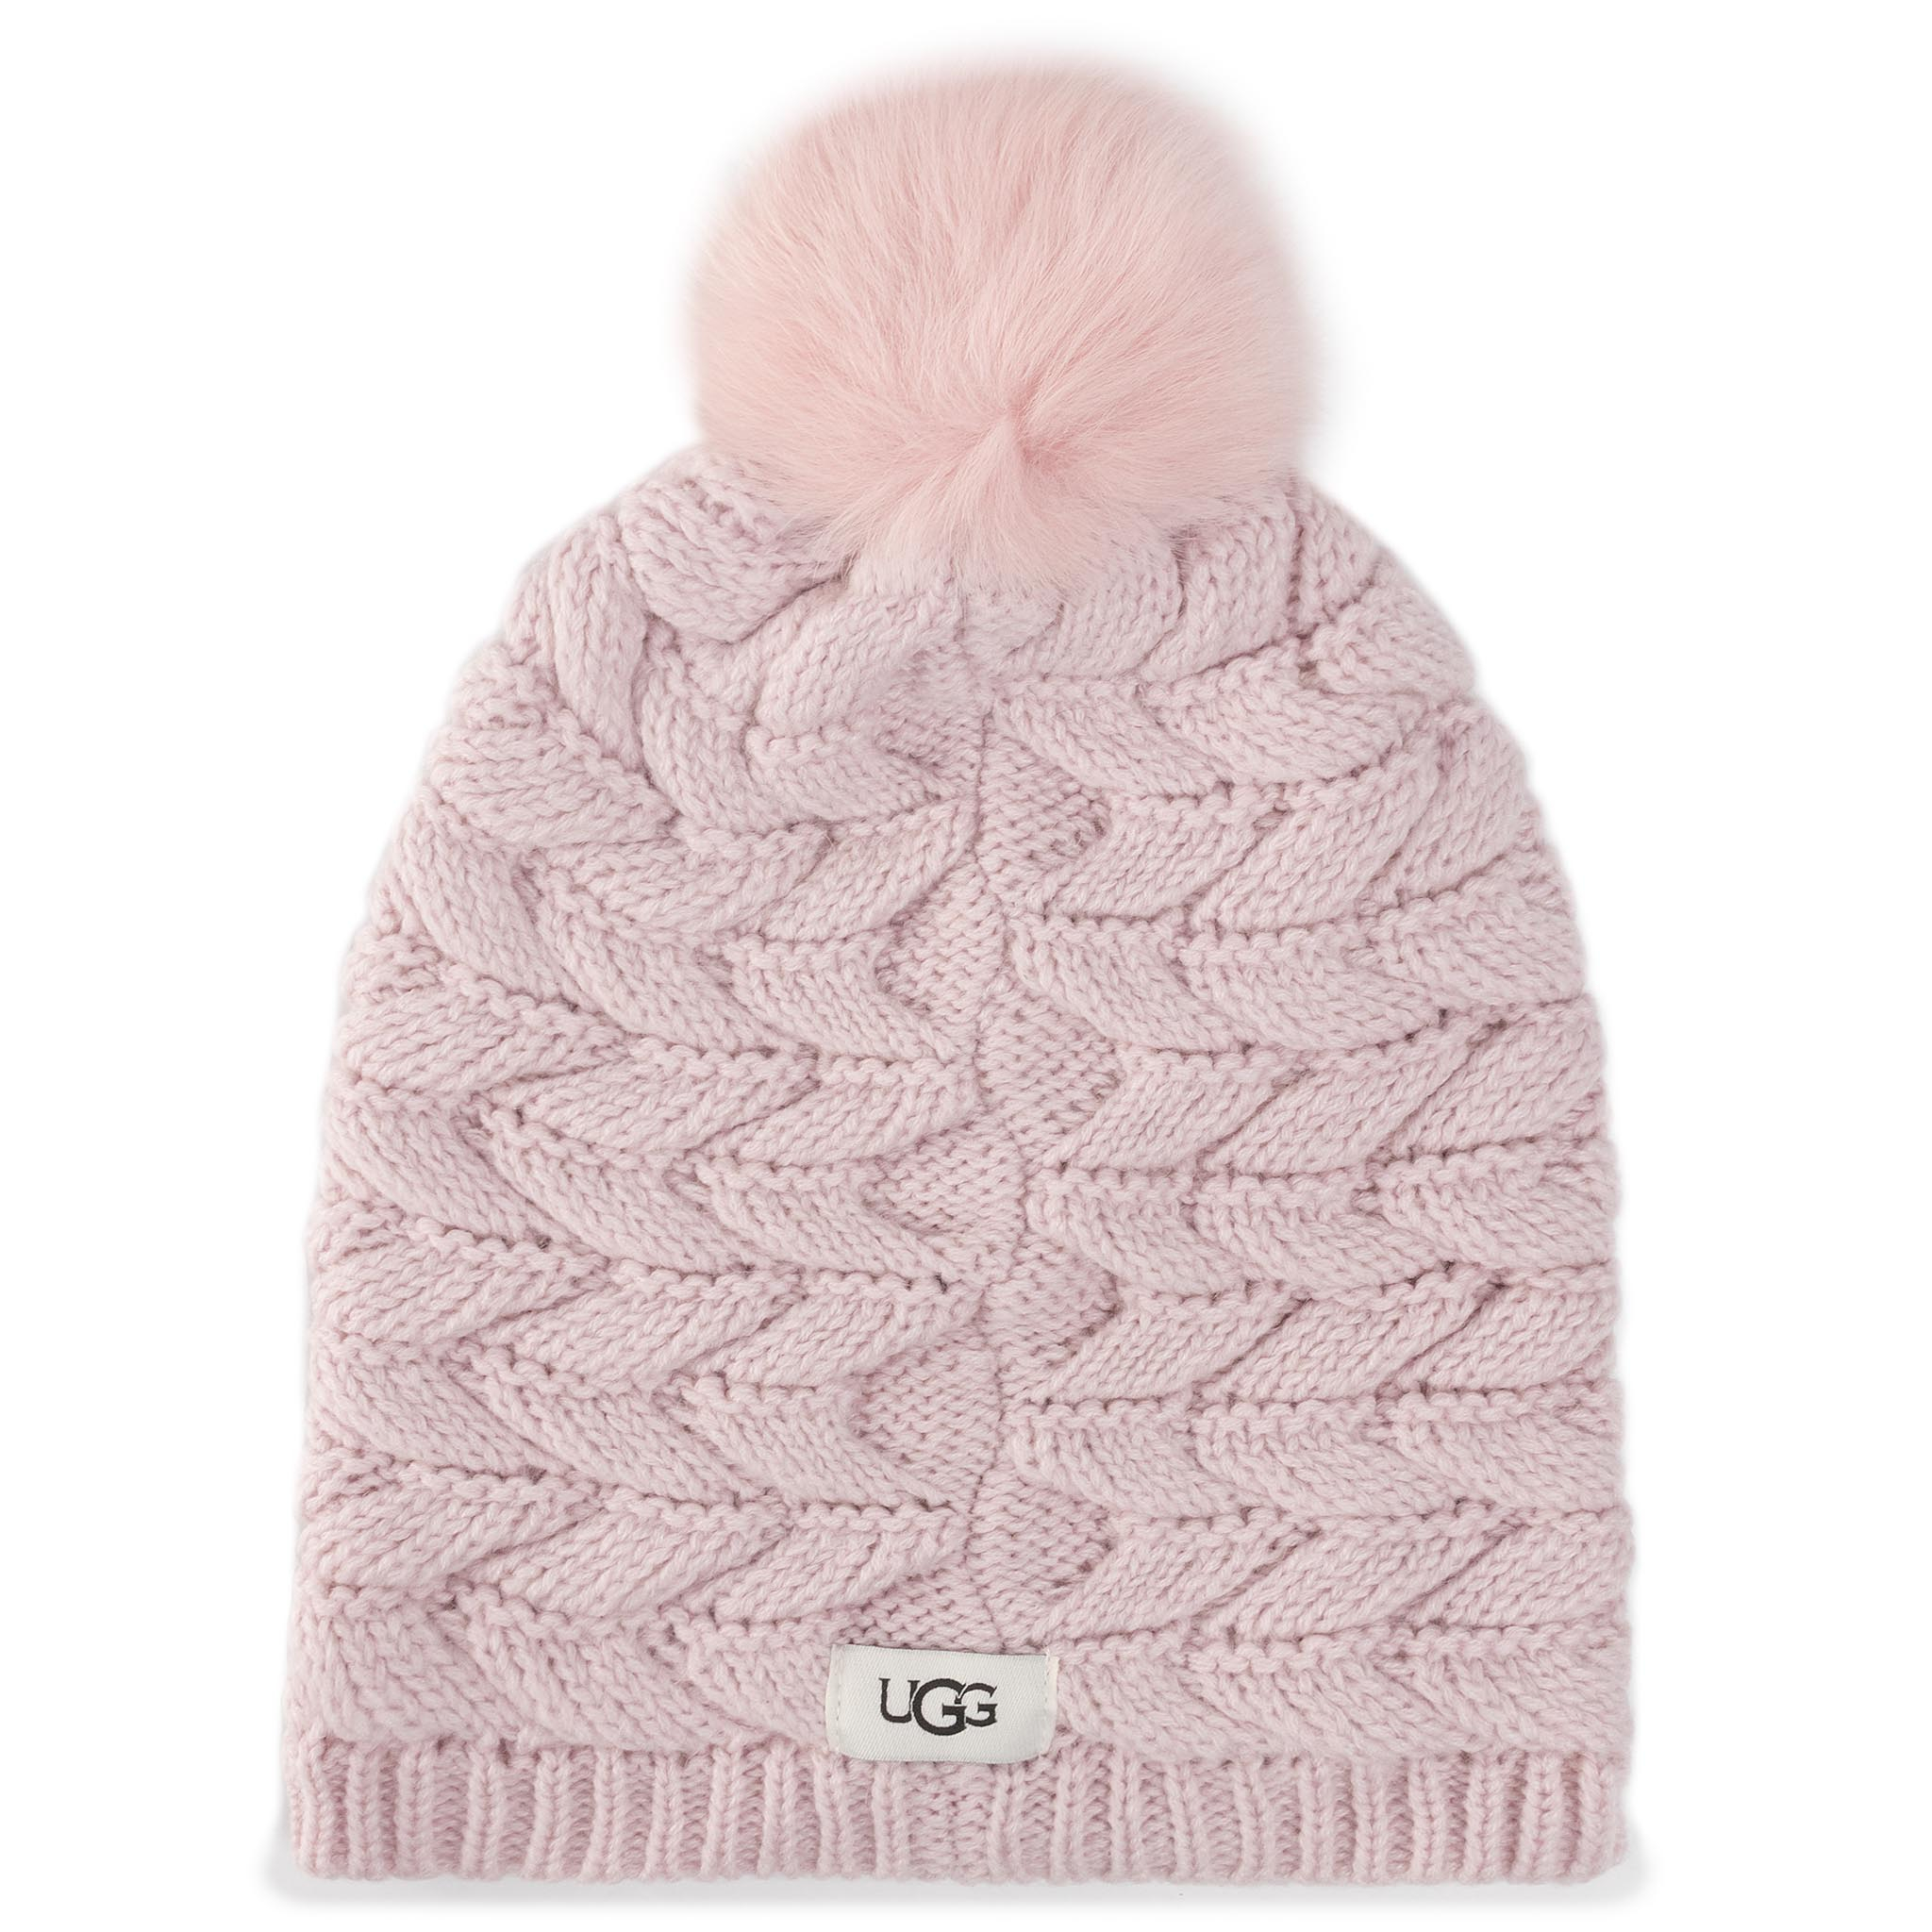 Căciulă UGG - Cable Hat With Pom 18756 Pcry